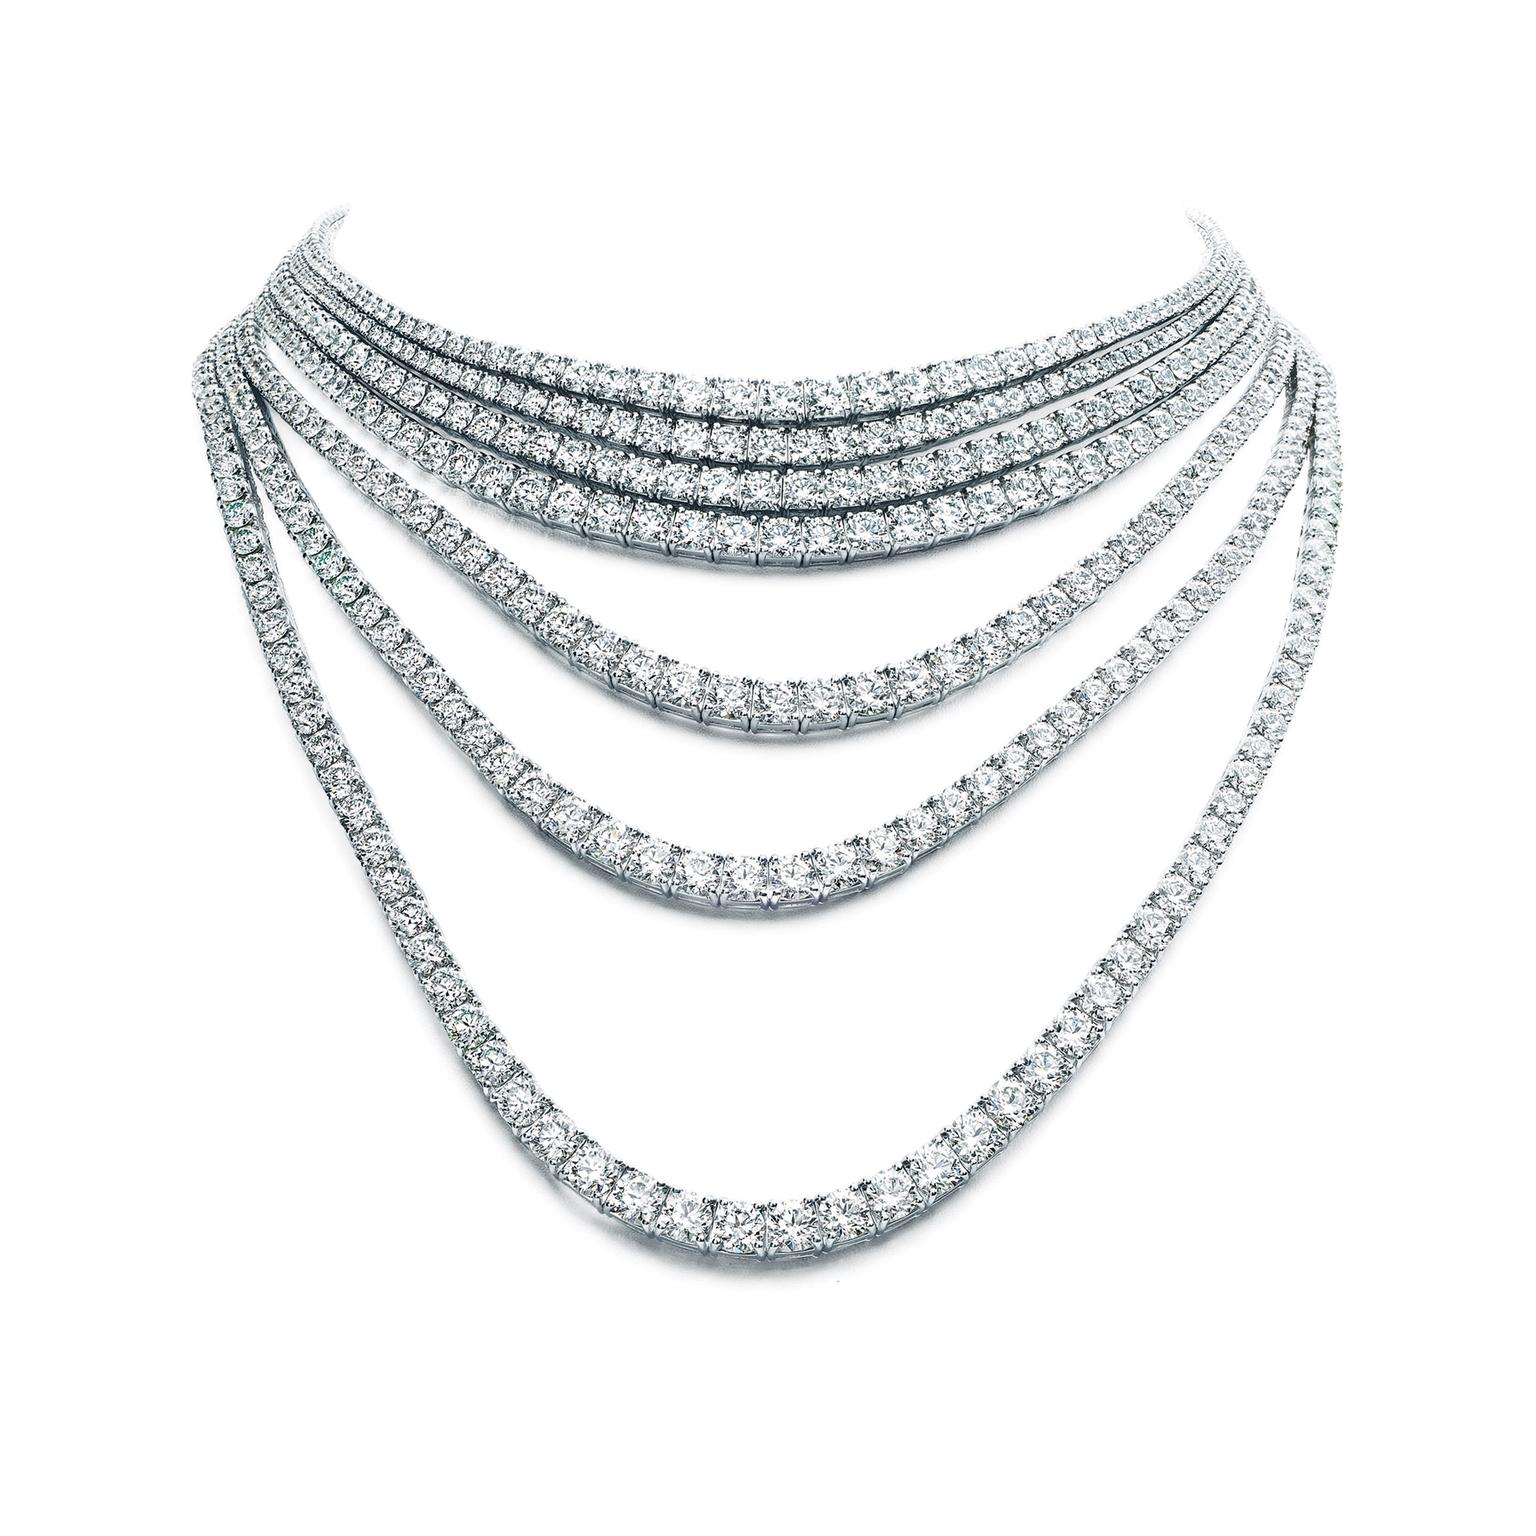 Tiffany Masterpieces Ribbons seven-strand diamond necklace